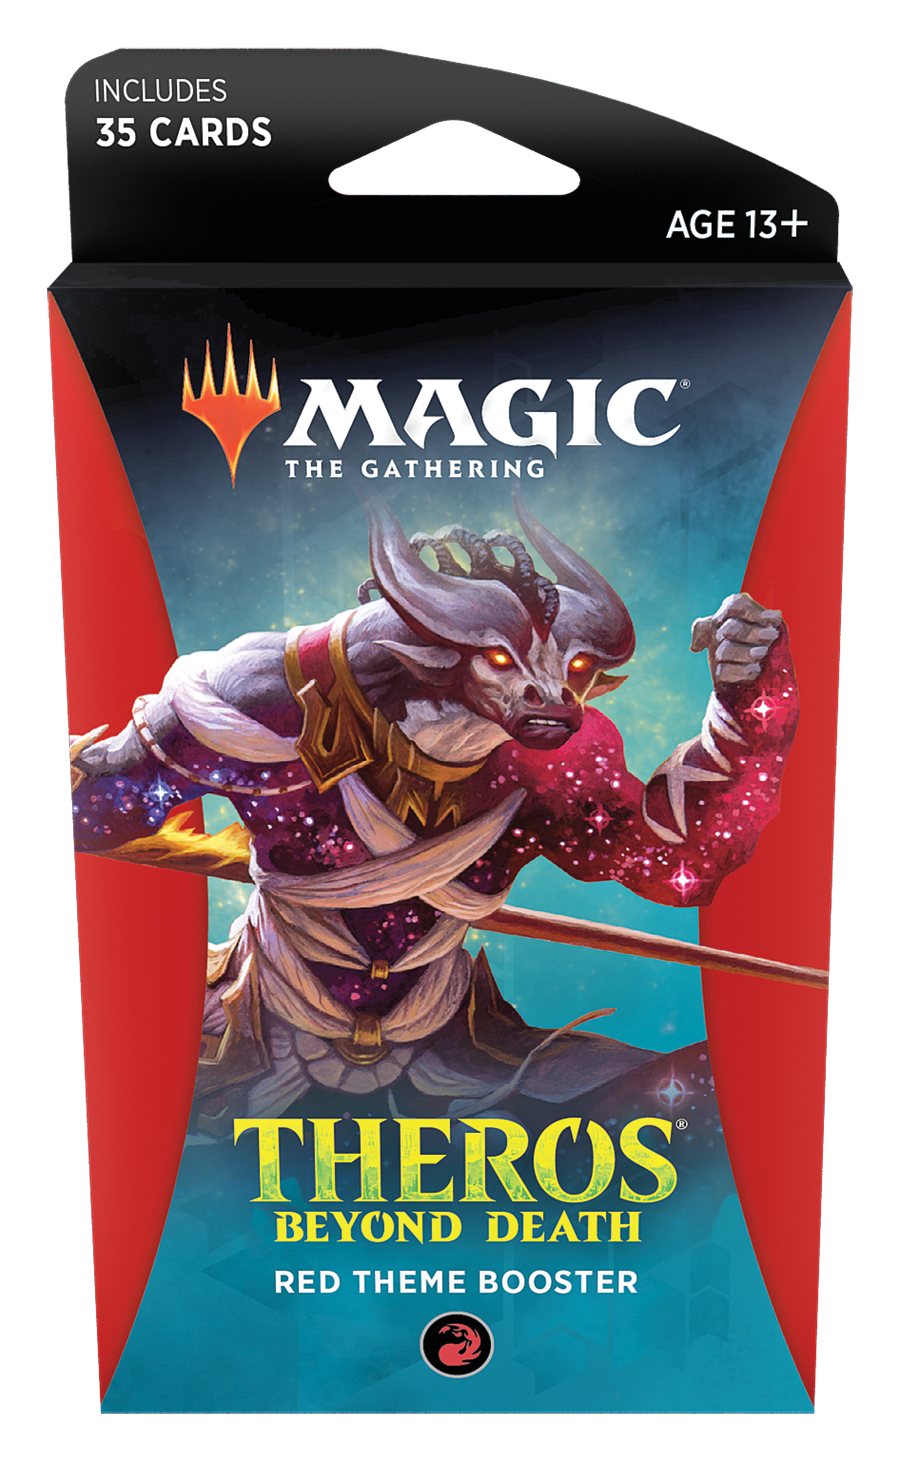 Theros más allá de la muerte Theme Booster- Red - Magic the Gathering - La caverna de Voltir-